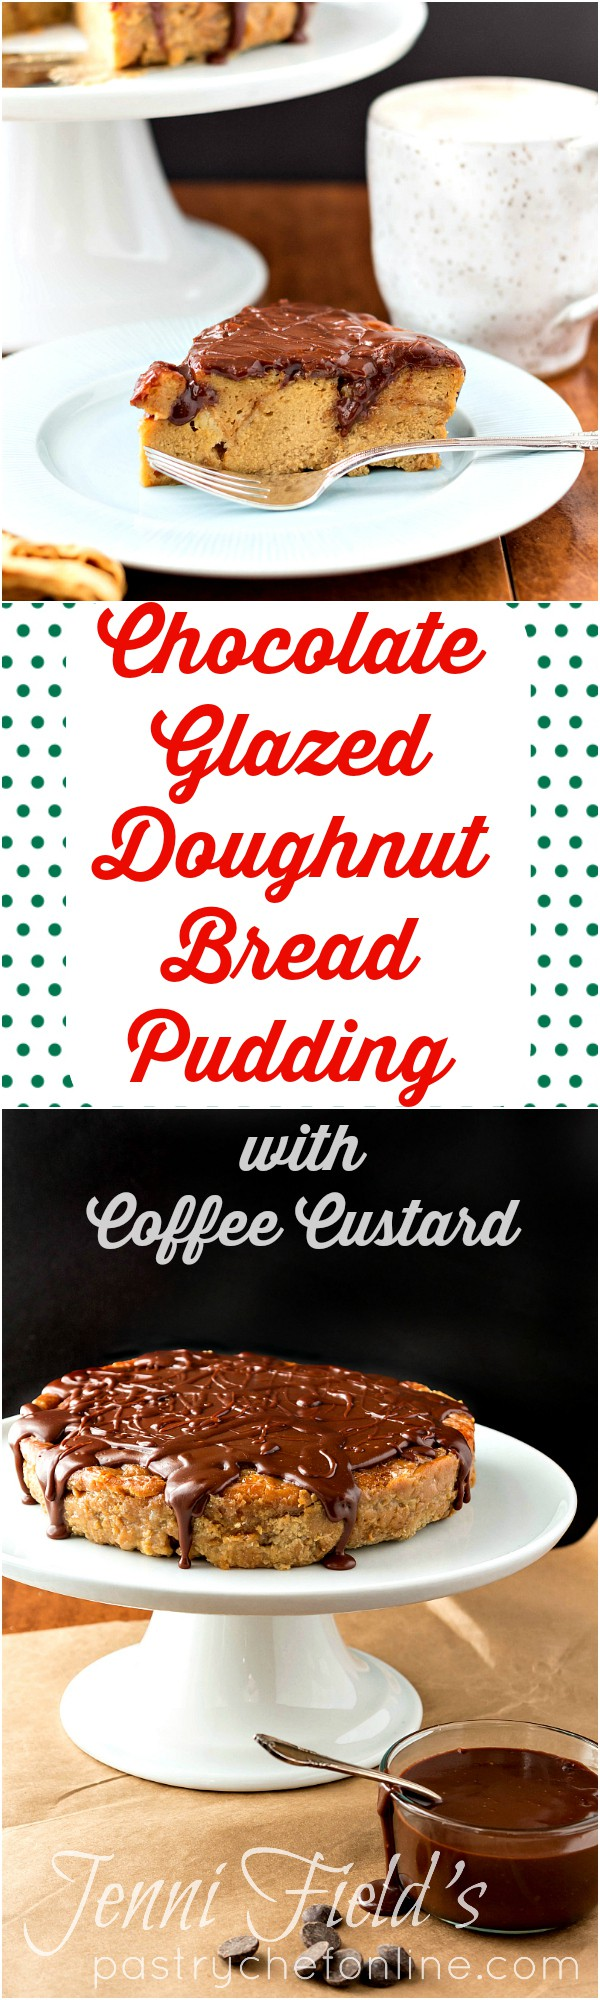 """Chocolate doughnut bread pudding slice on a white plate with a fork. Below the image is text that reads: """"Chocolate glazed doughnut bread pudding with coffee custard"""" and a whole cake of it on a cake stand covered with the glaze."""